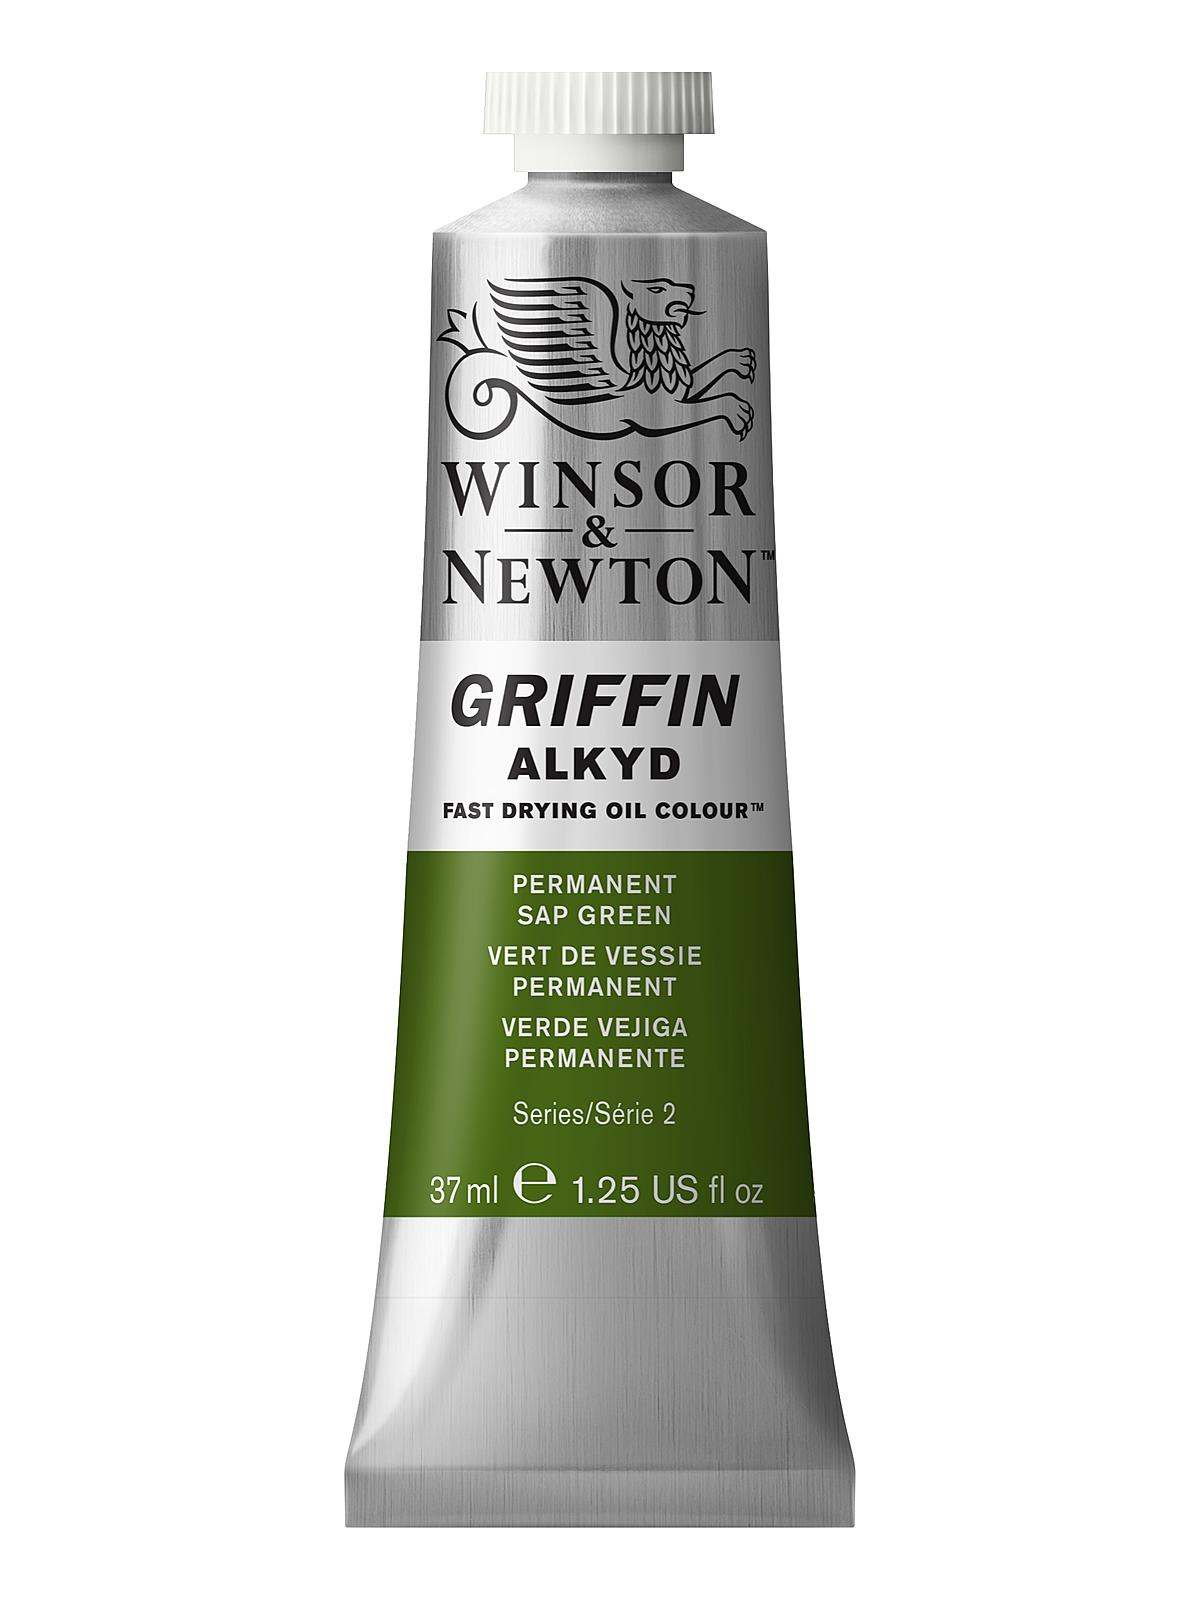 Winsor newton griffin alkyd oil colours for What are alkyd paints